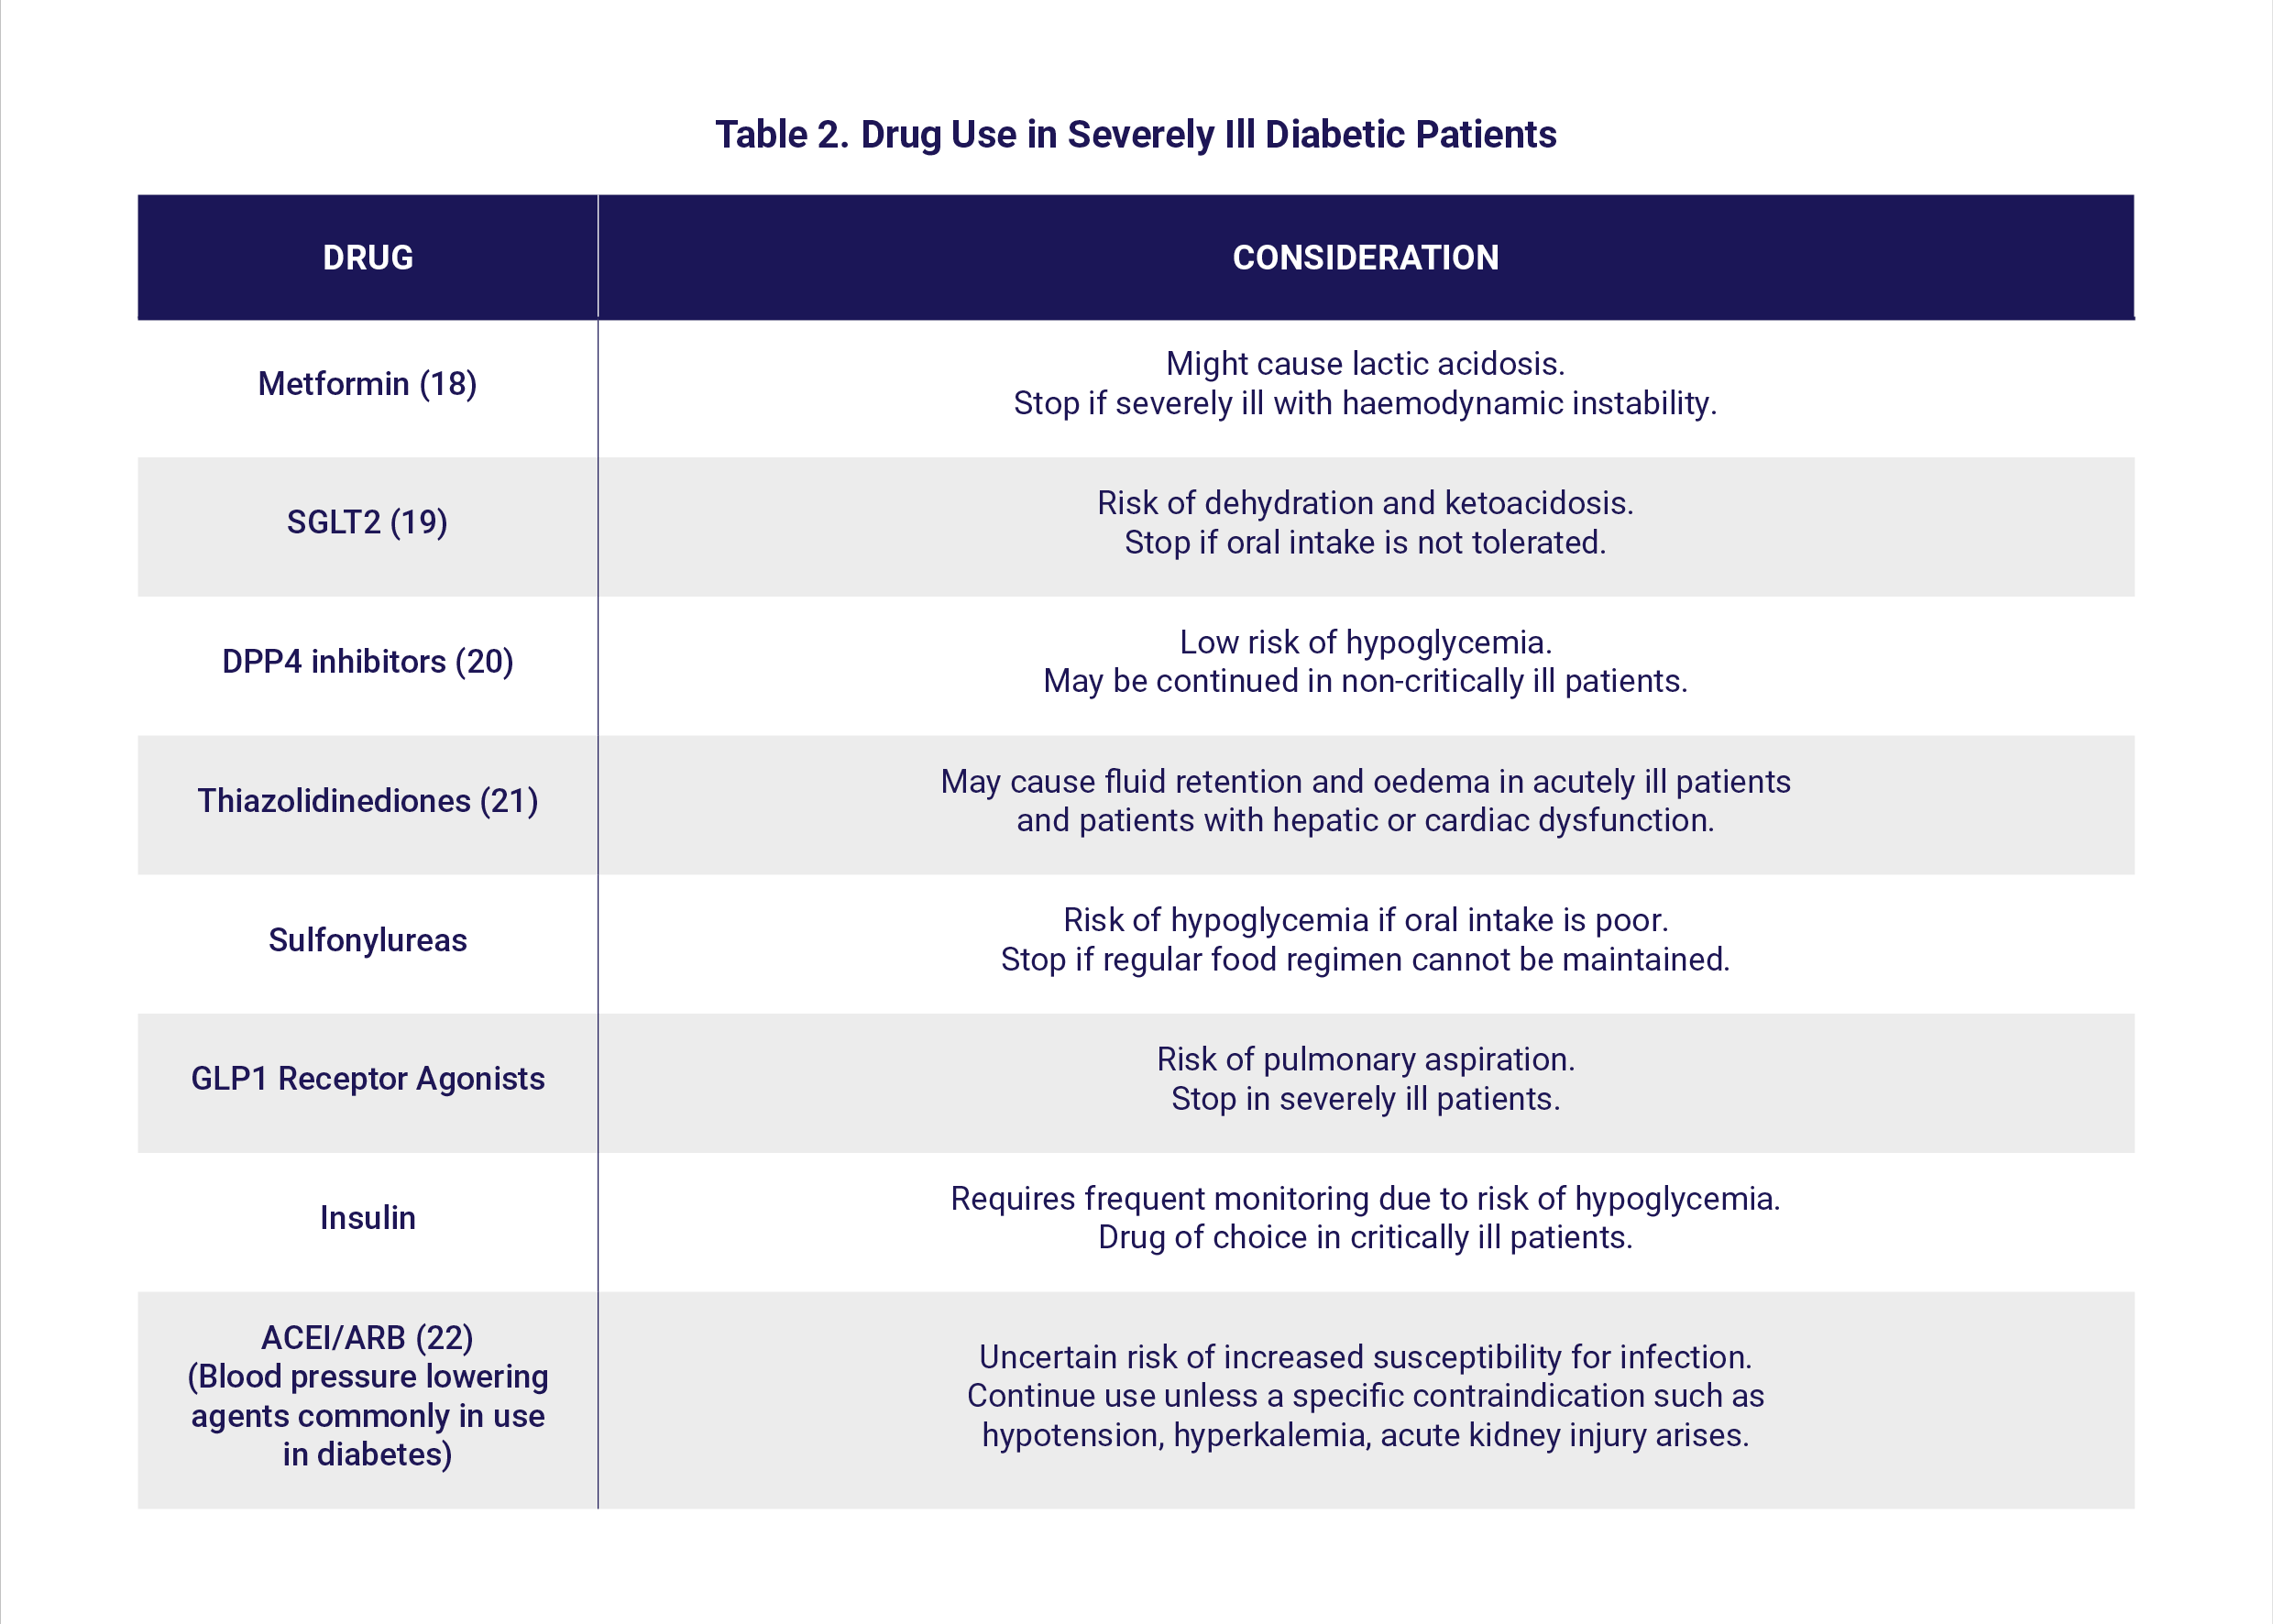 Table 2. Drug Use in Severely Ill Diabetic Patients